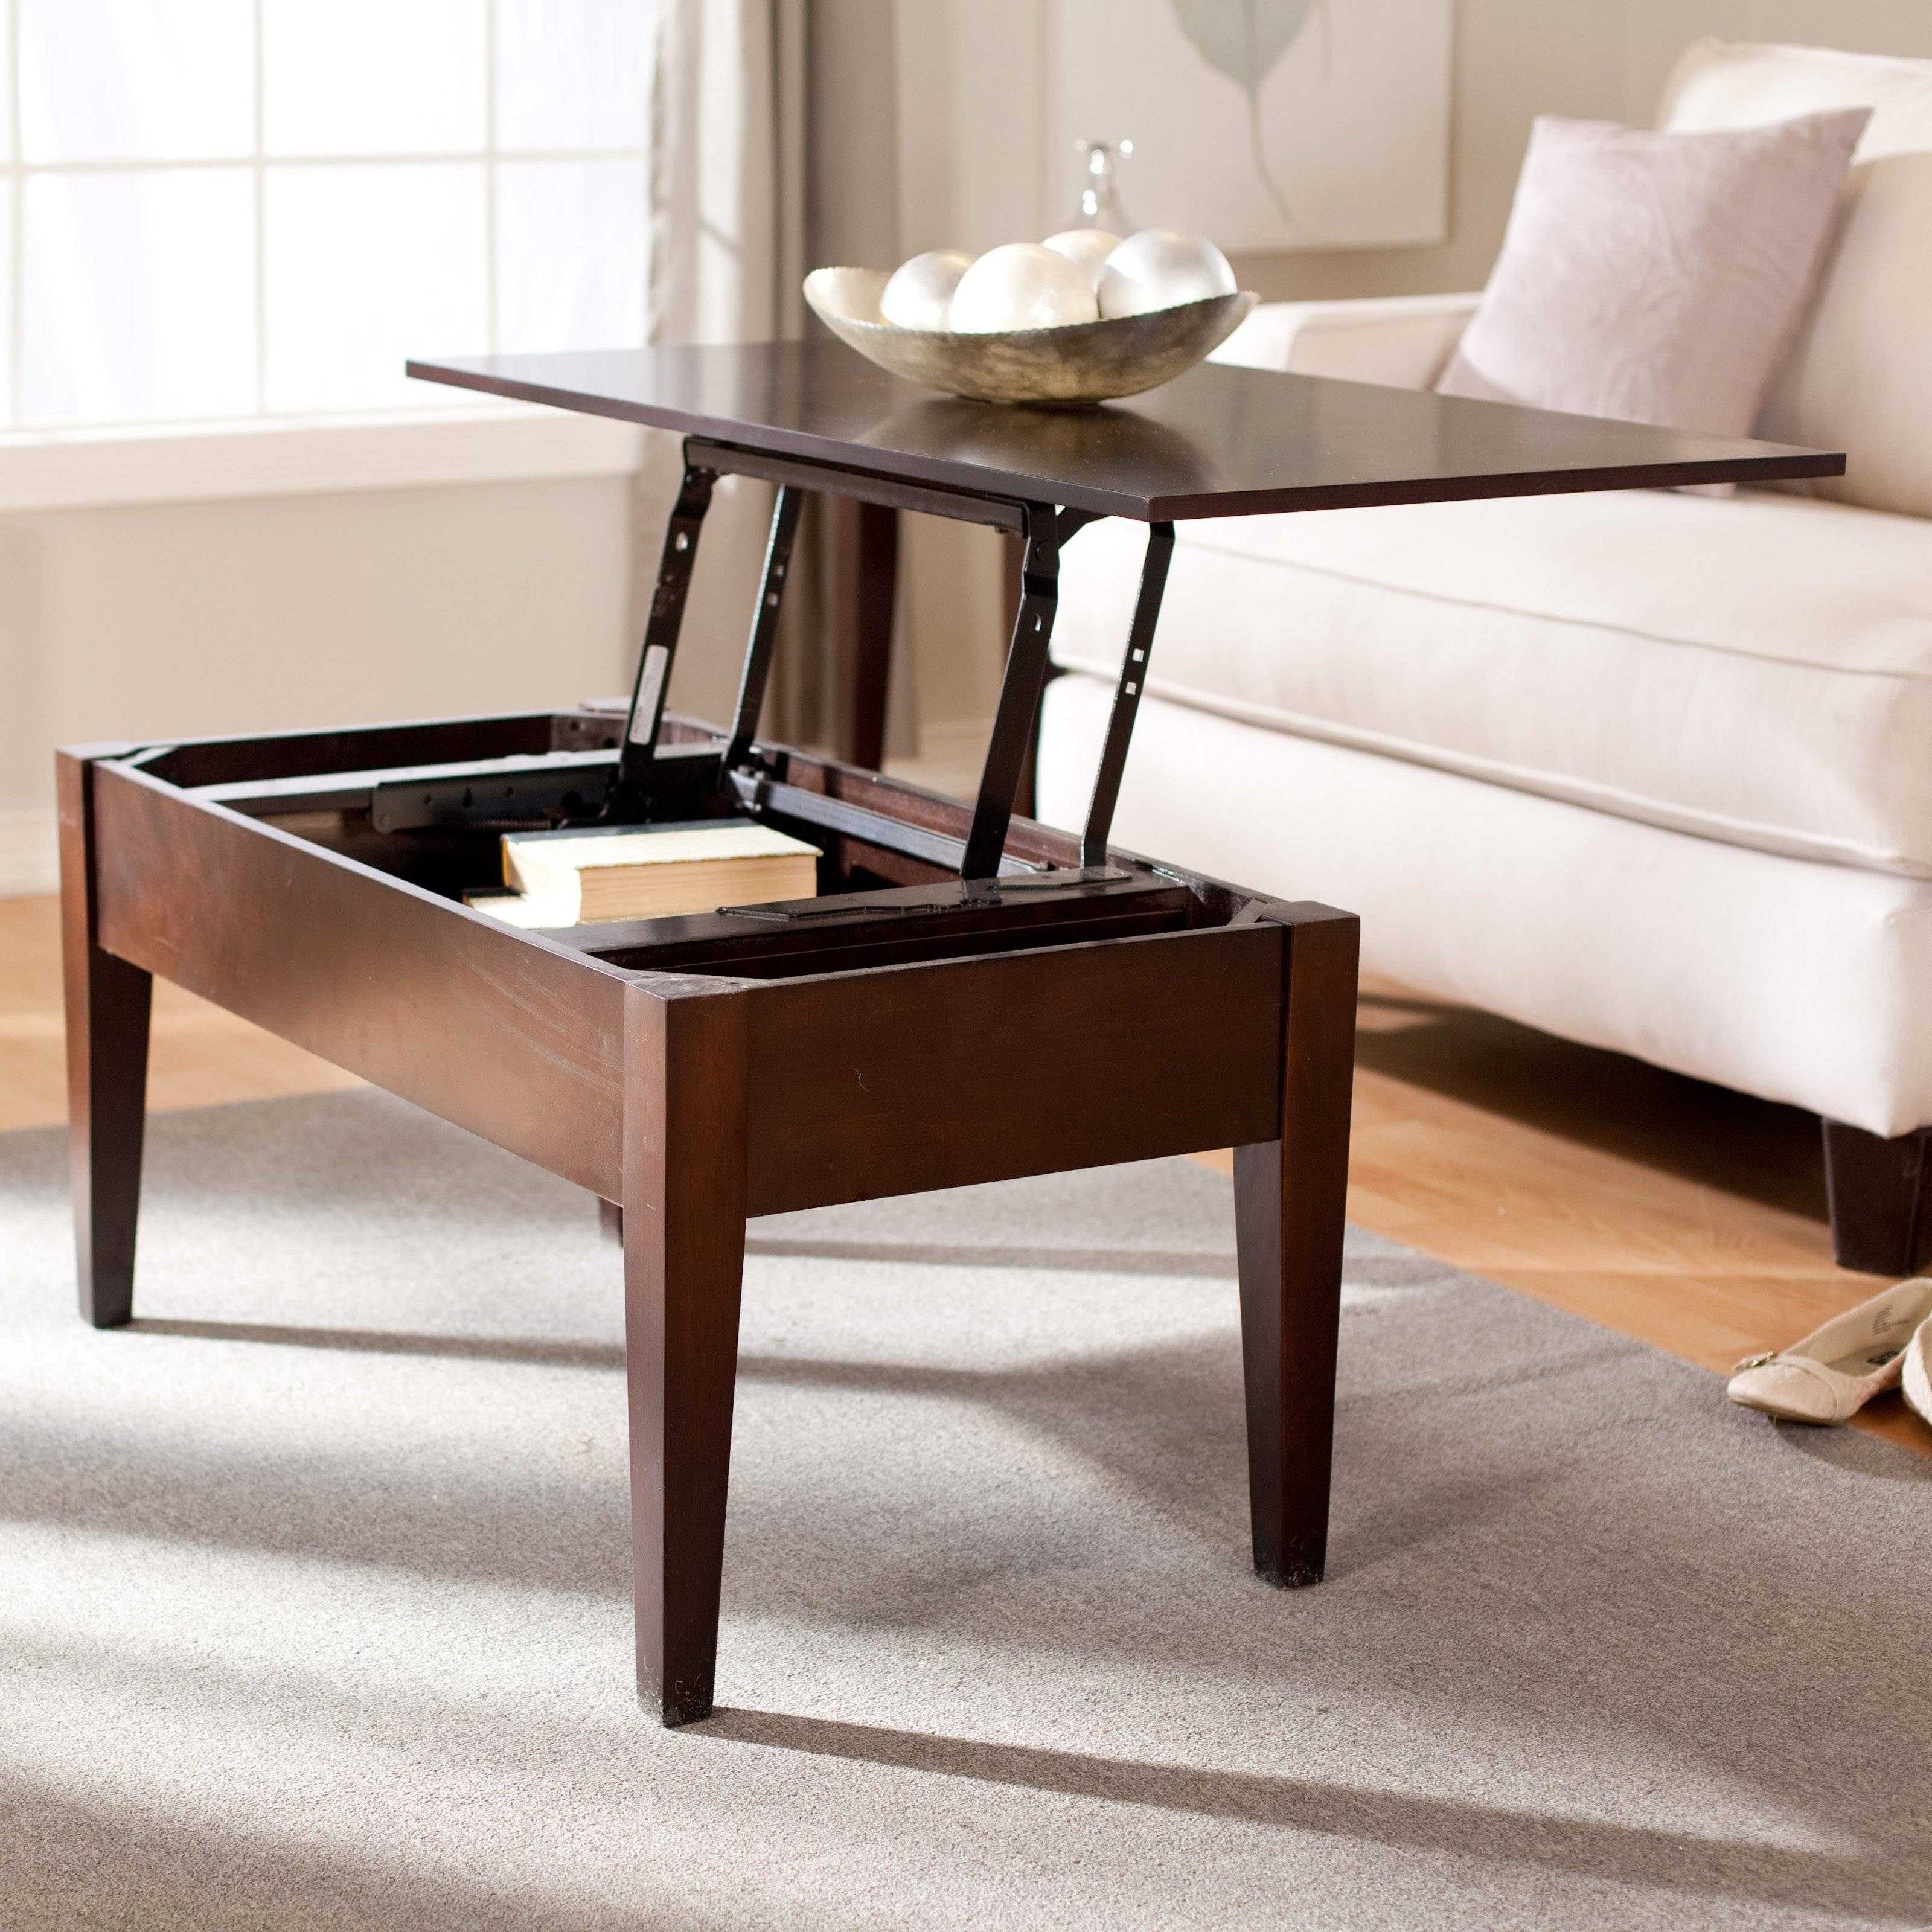 Turner Lift Top Coffee Table - Espresso | Hayneedle pertaining to Lift Top Coffee Table Furniture (Image 28 of 30)